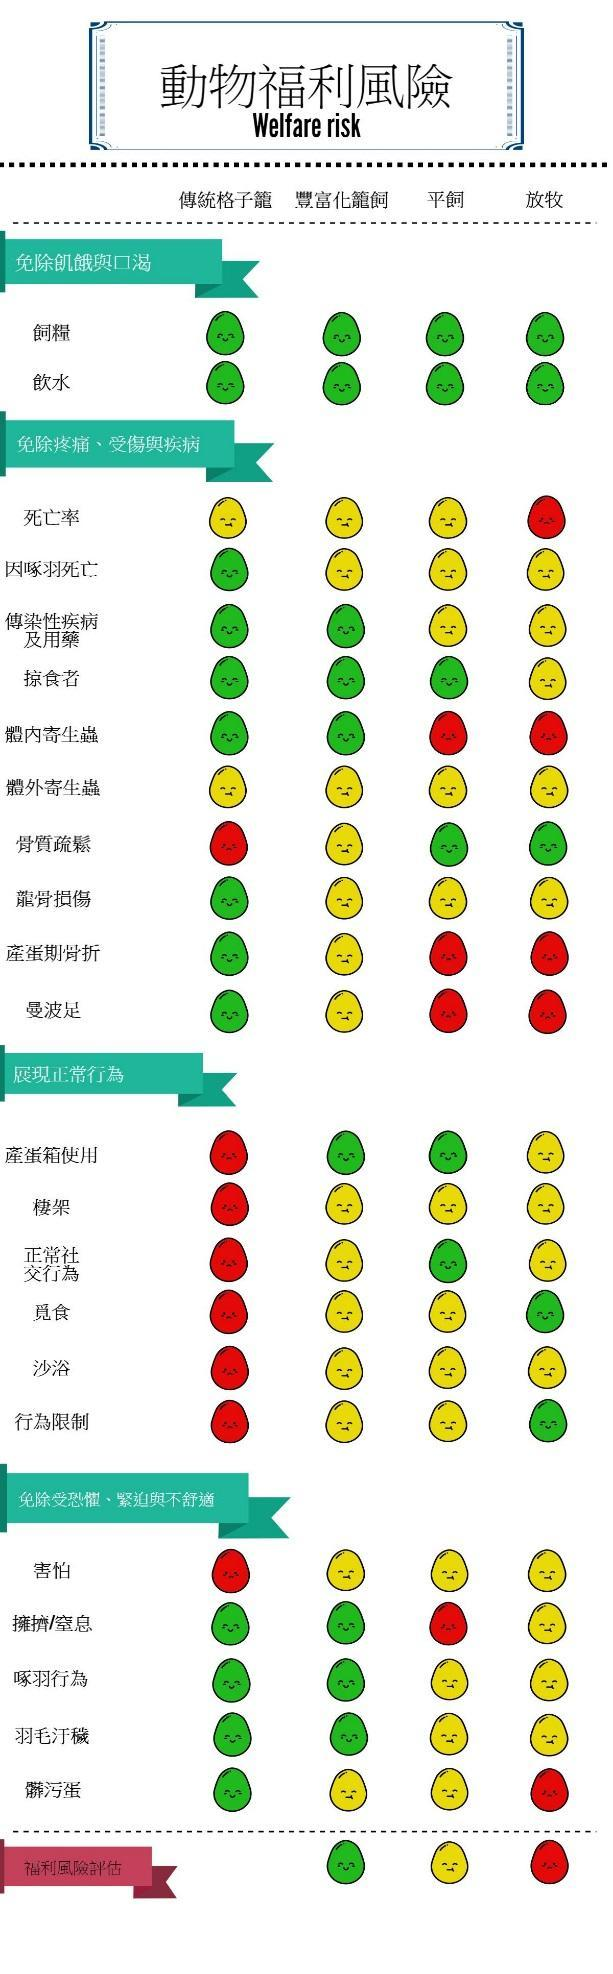 (資料來源:LayWel Project: Welfare risk assessment in different housing systems[11])